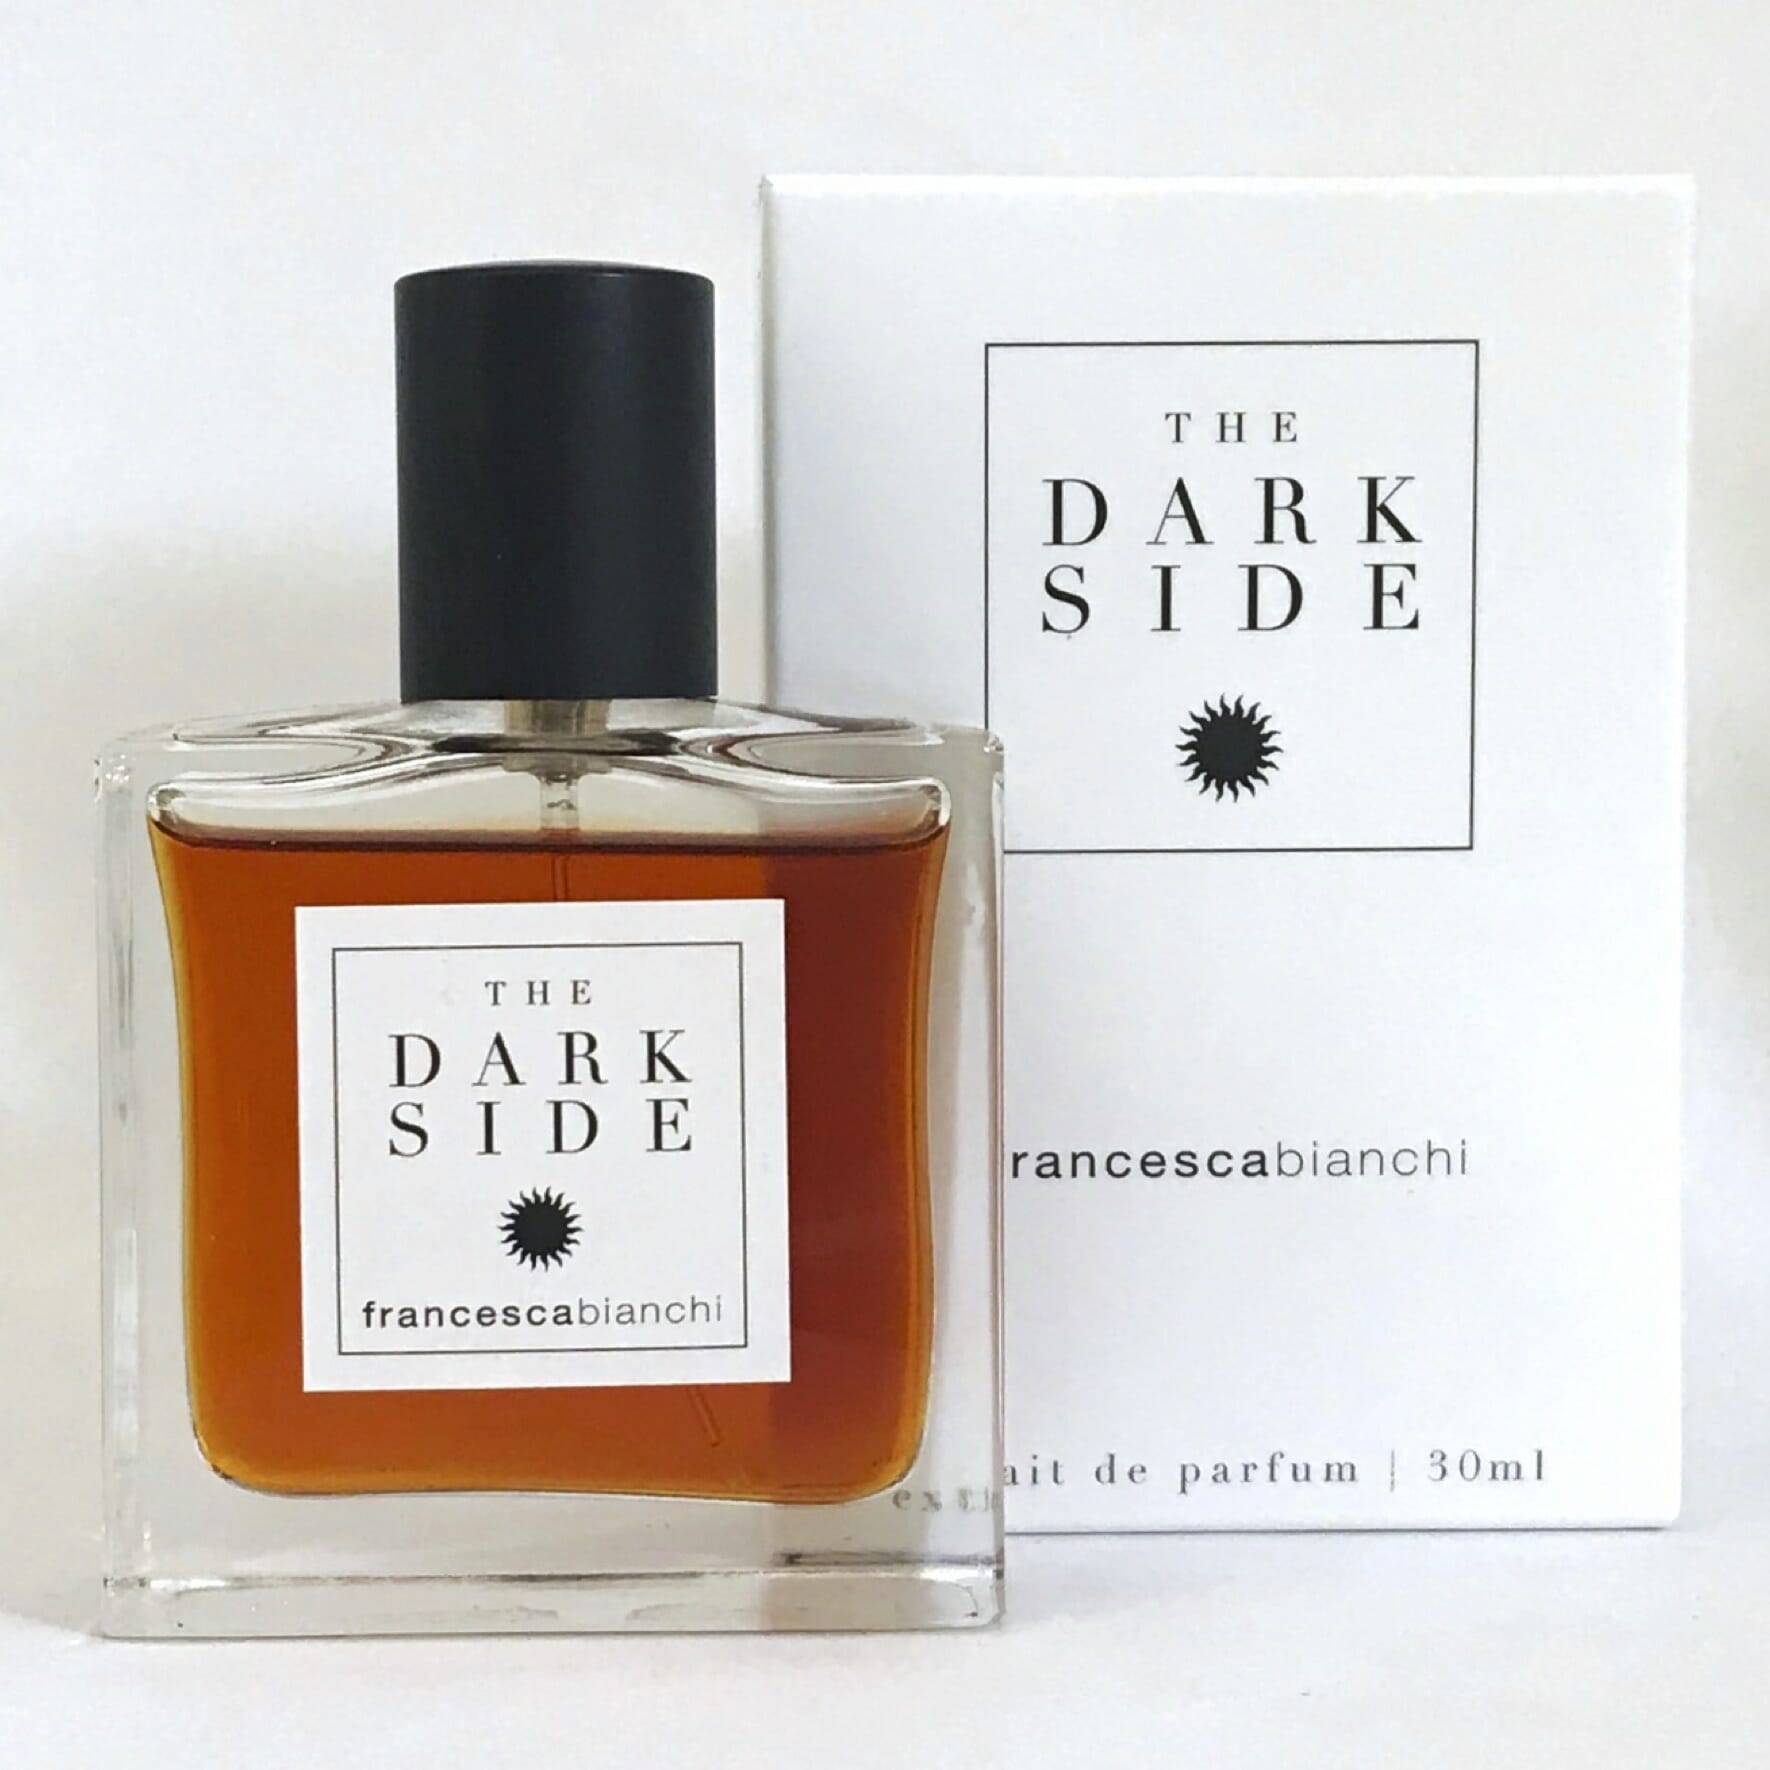 The Dark Side perfume 30 ml Francesca Bianchi Perfumes with box